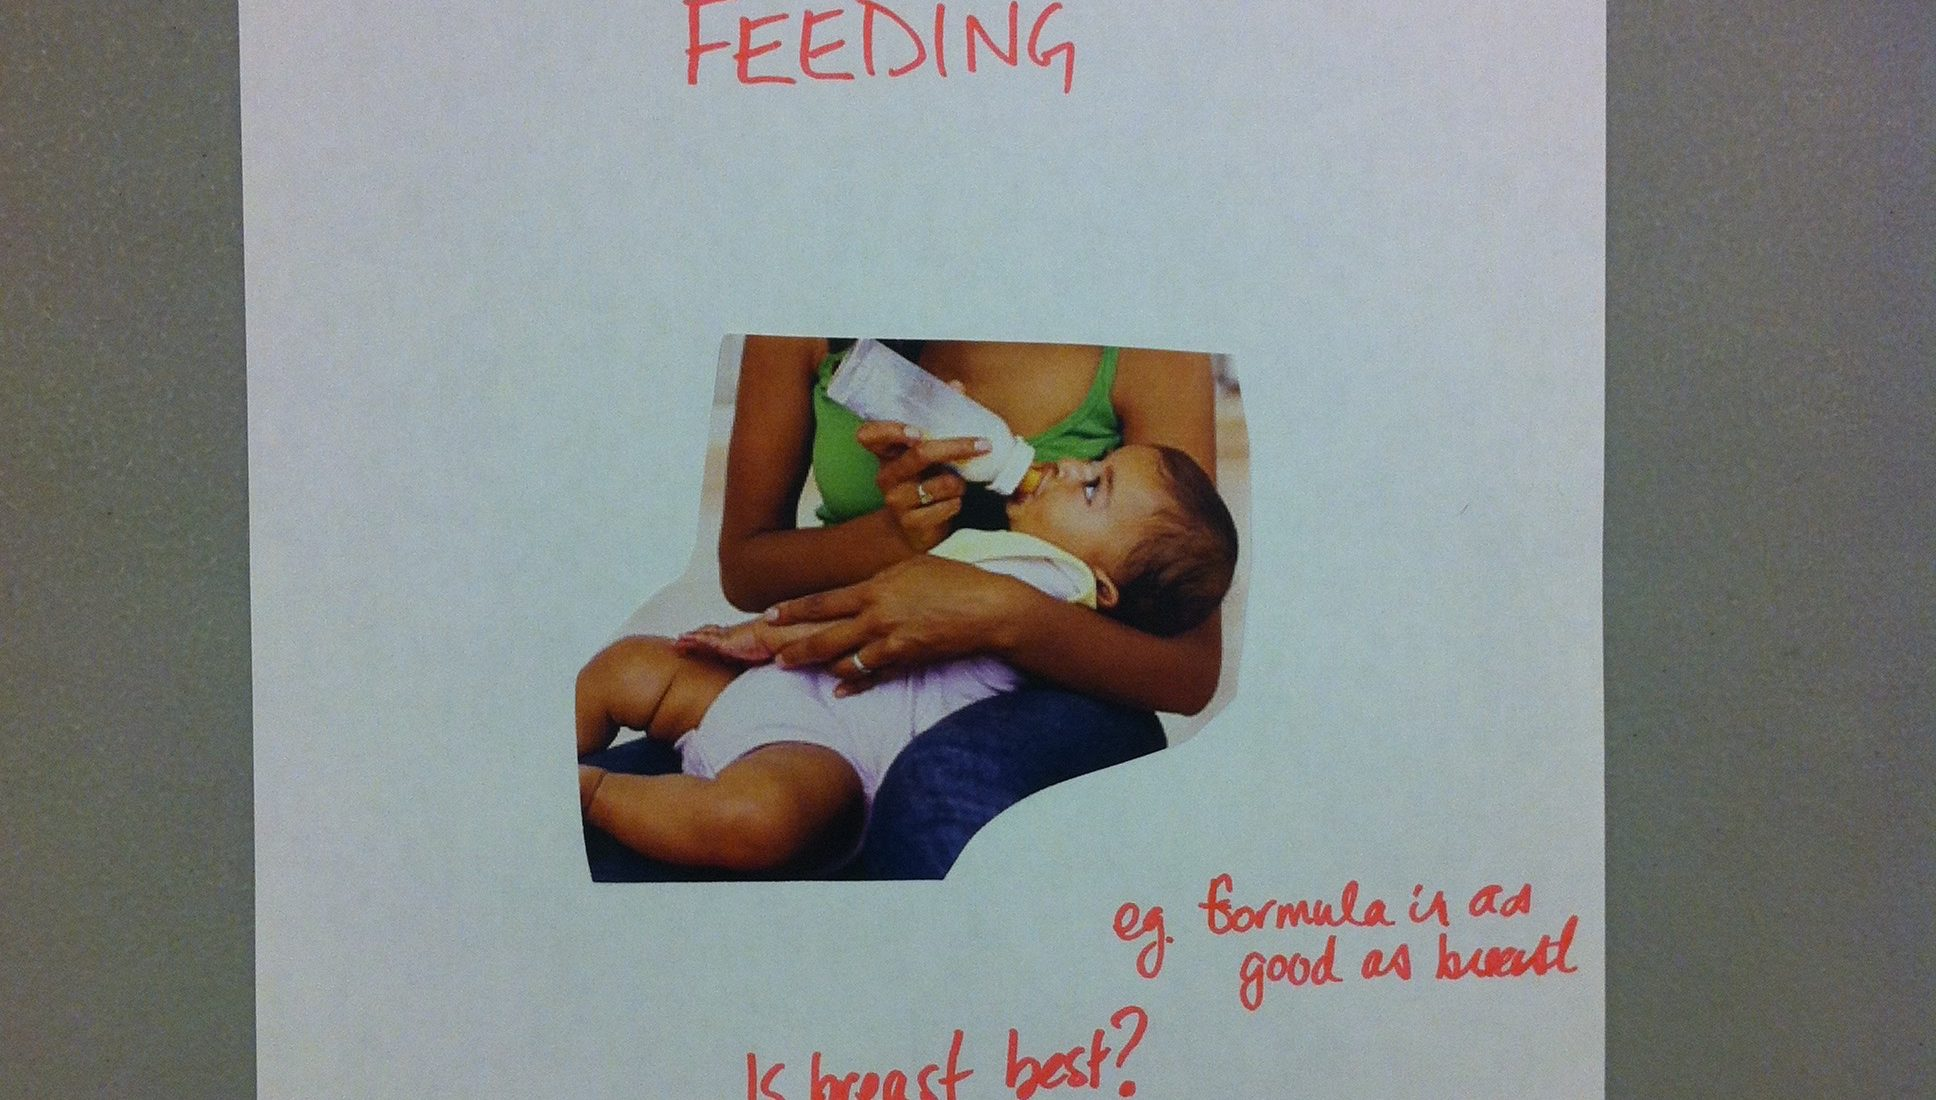 A collage by a project participant. Participants were asked to cut out and remix images and text from the resources to design a cover for an infant feeding resource for HIV positive parents. An image of a parent feeding their baby through a bottle is in the middle of the page. The red text at the top says: Infant Formula Feeding. The red text at the bottom asks: Is breast best? The red text towards the bottom states: eg. formula is as good as breast.